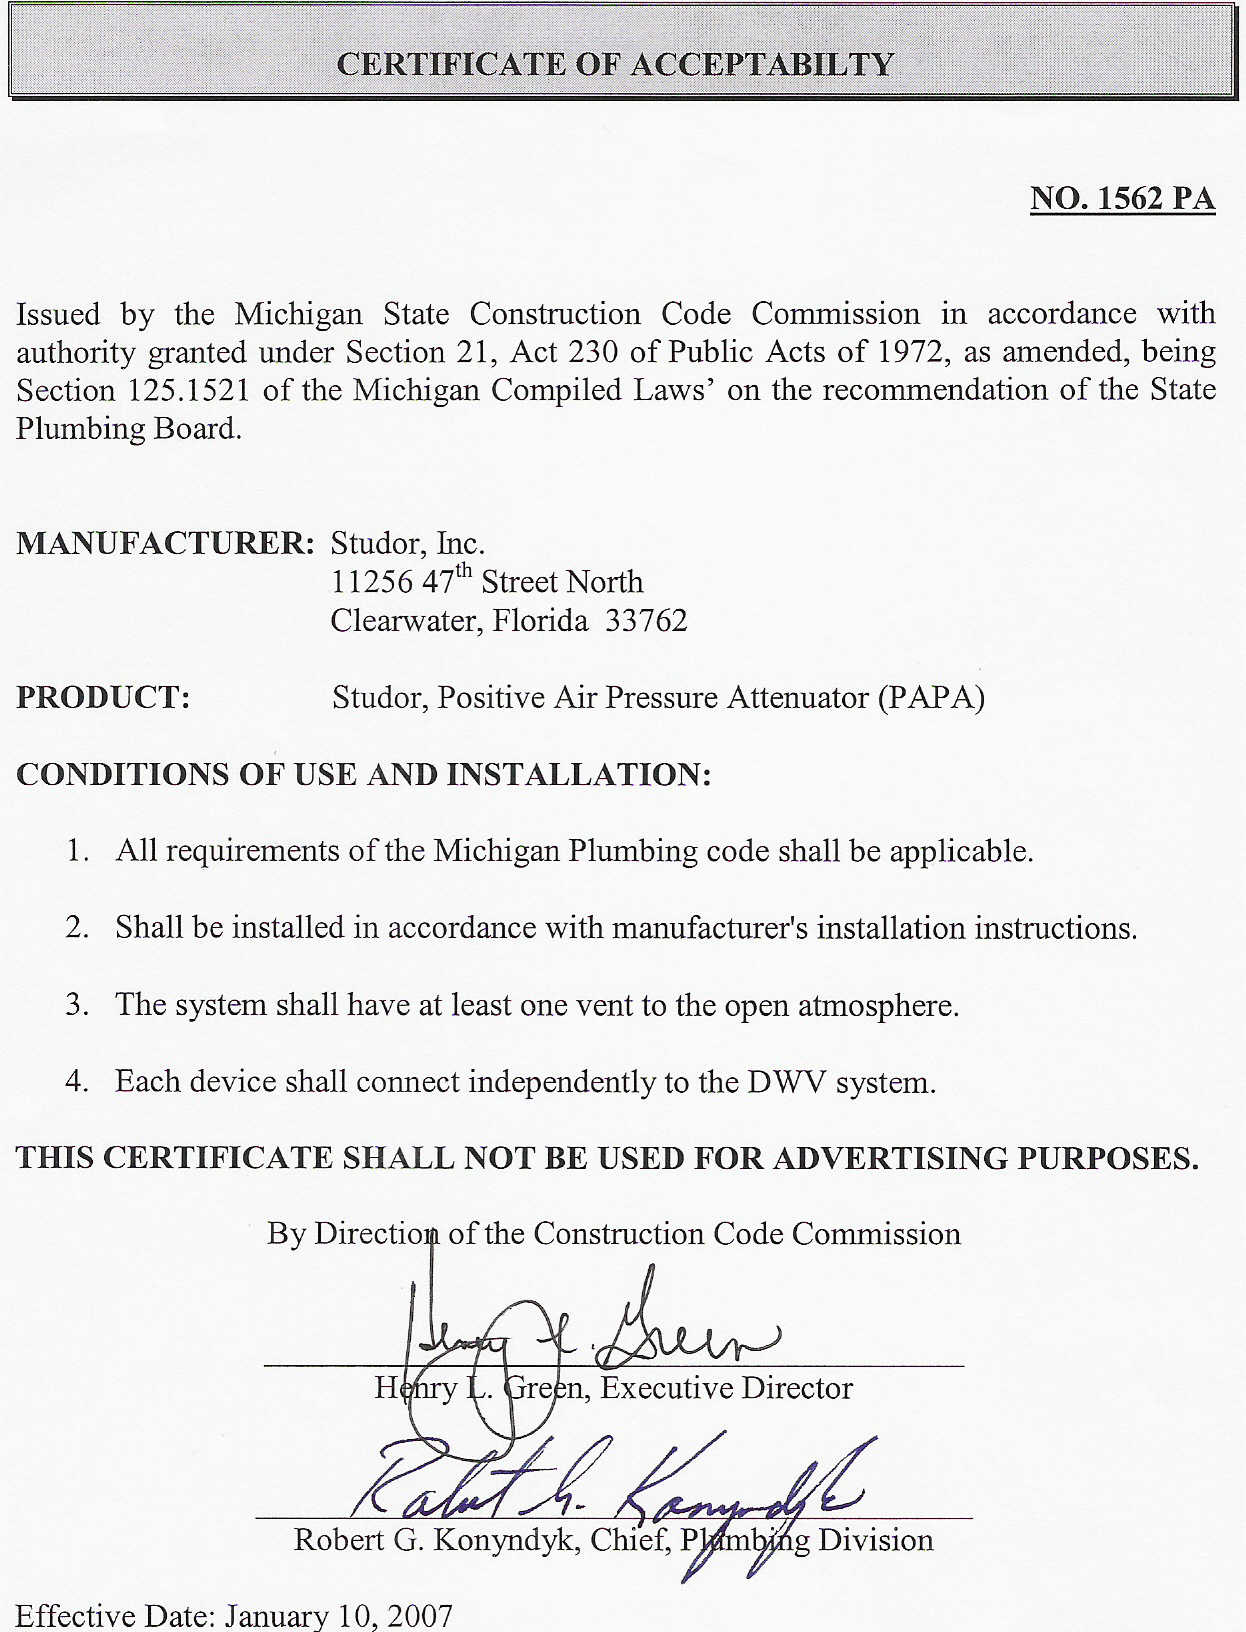 Product approval letters ips corporation papa letter of approval for michigan altavistaventures Gallery